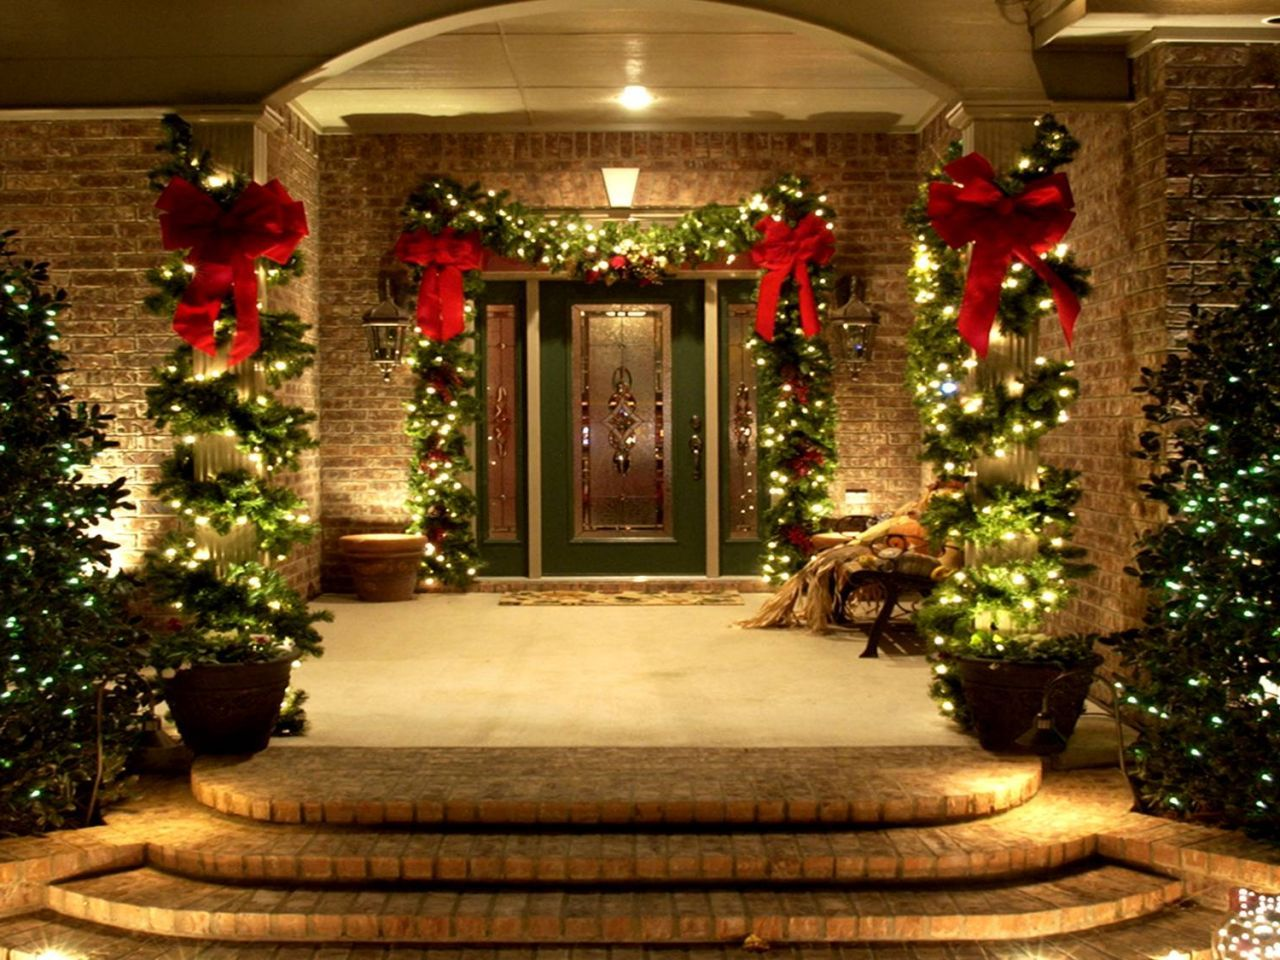 Use of lighting and decorative plants to the outdoor for for Outdoor xmas decorations